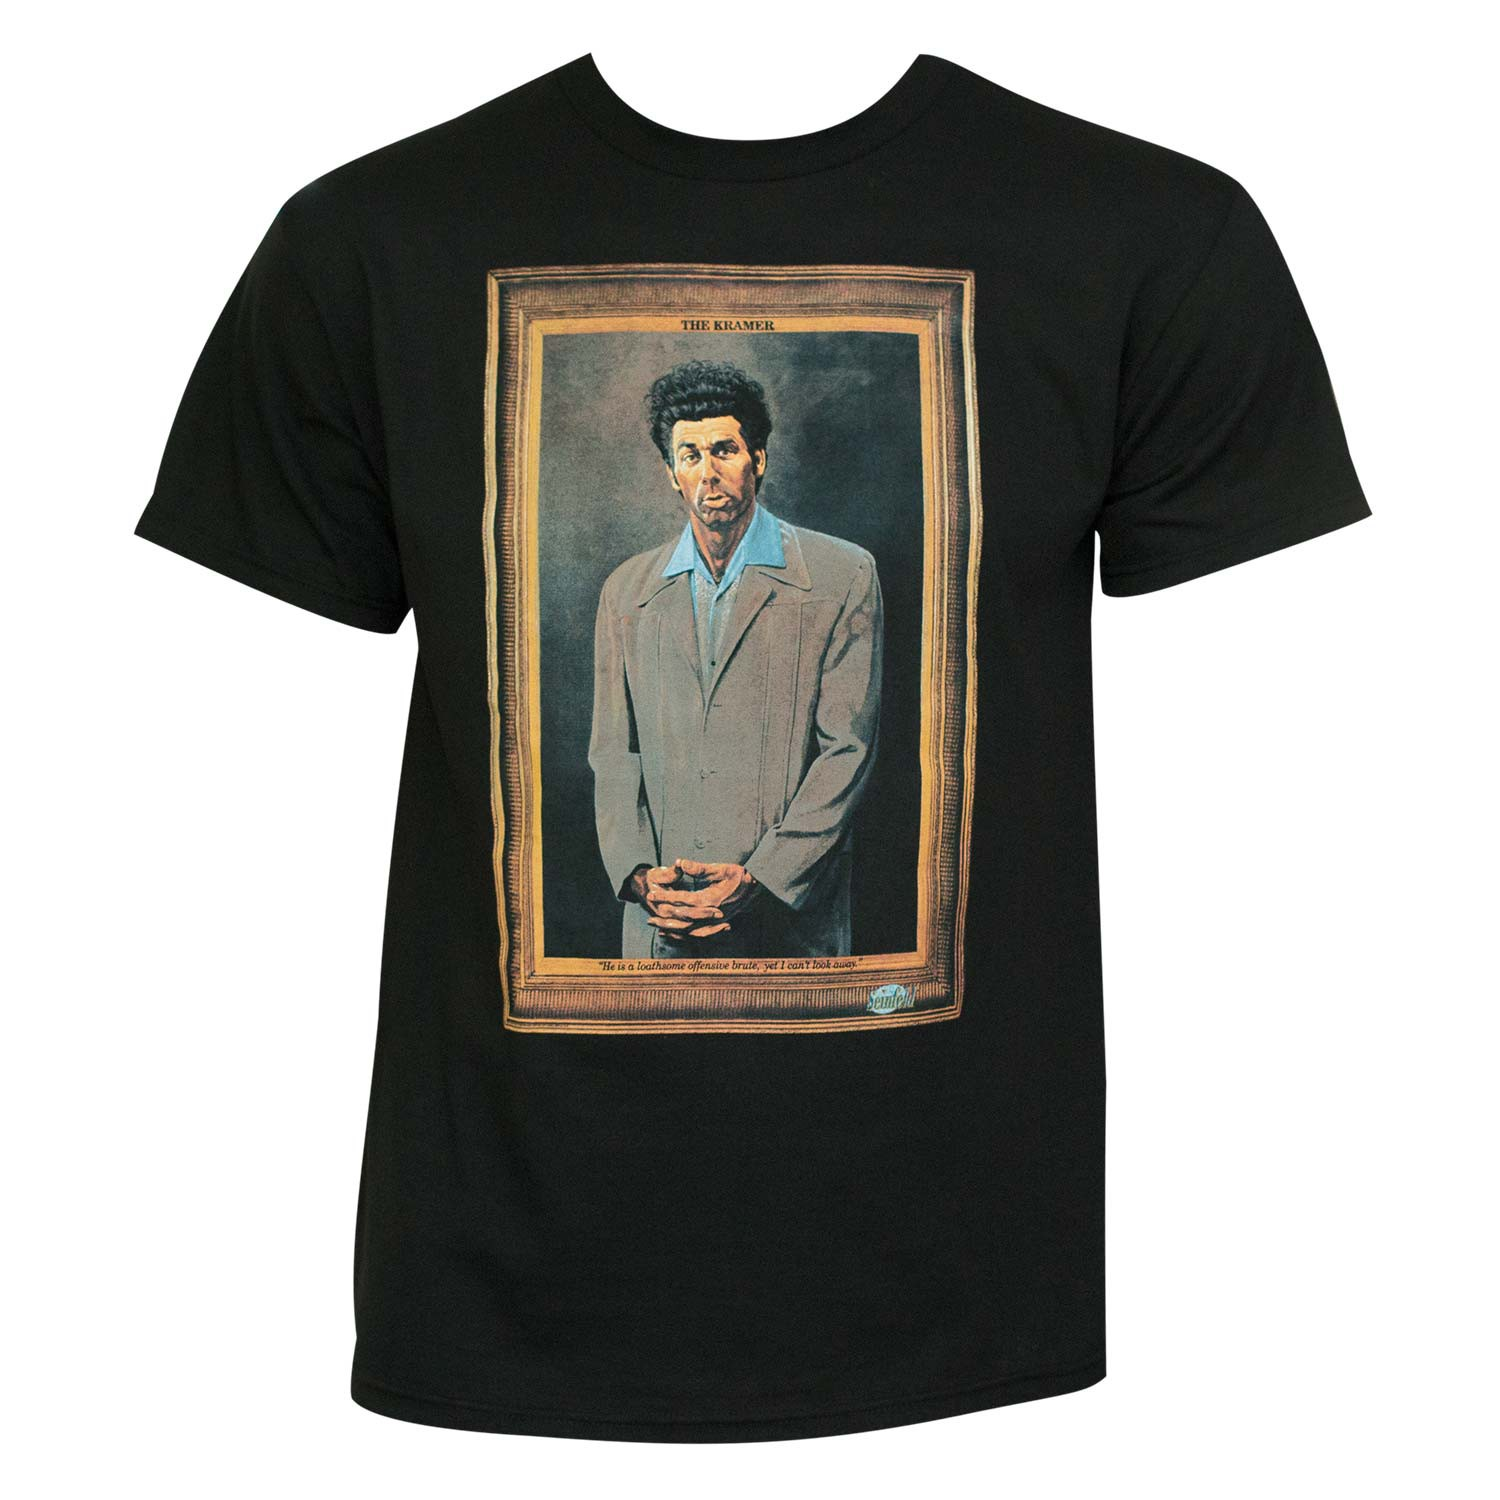 Seinfeld Kramer Painting Men's Black Graphic T-Shirt